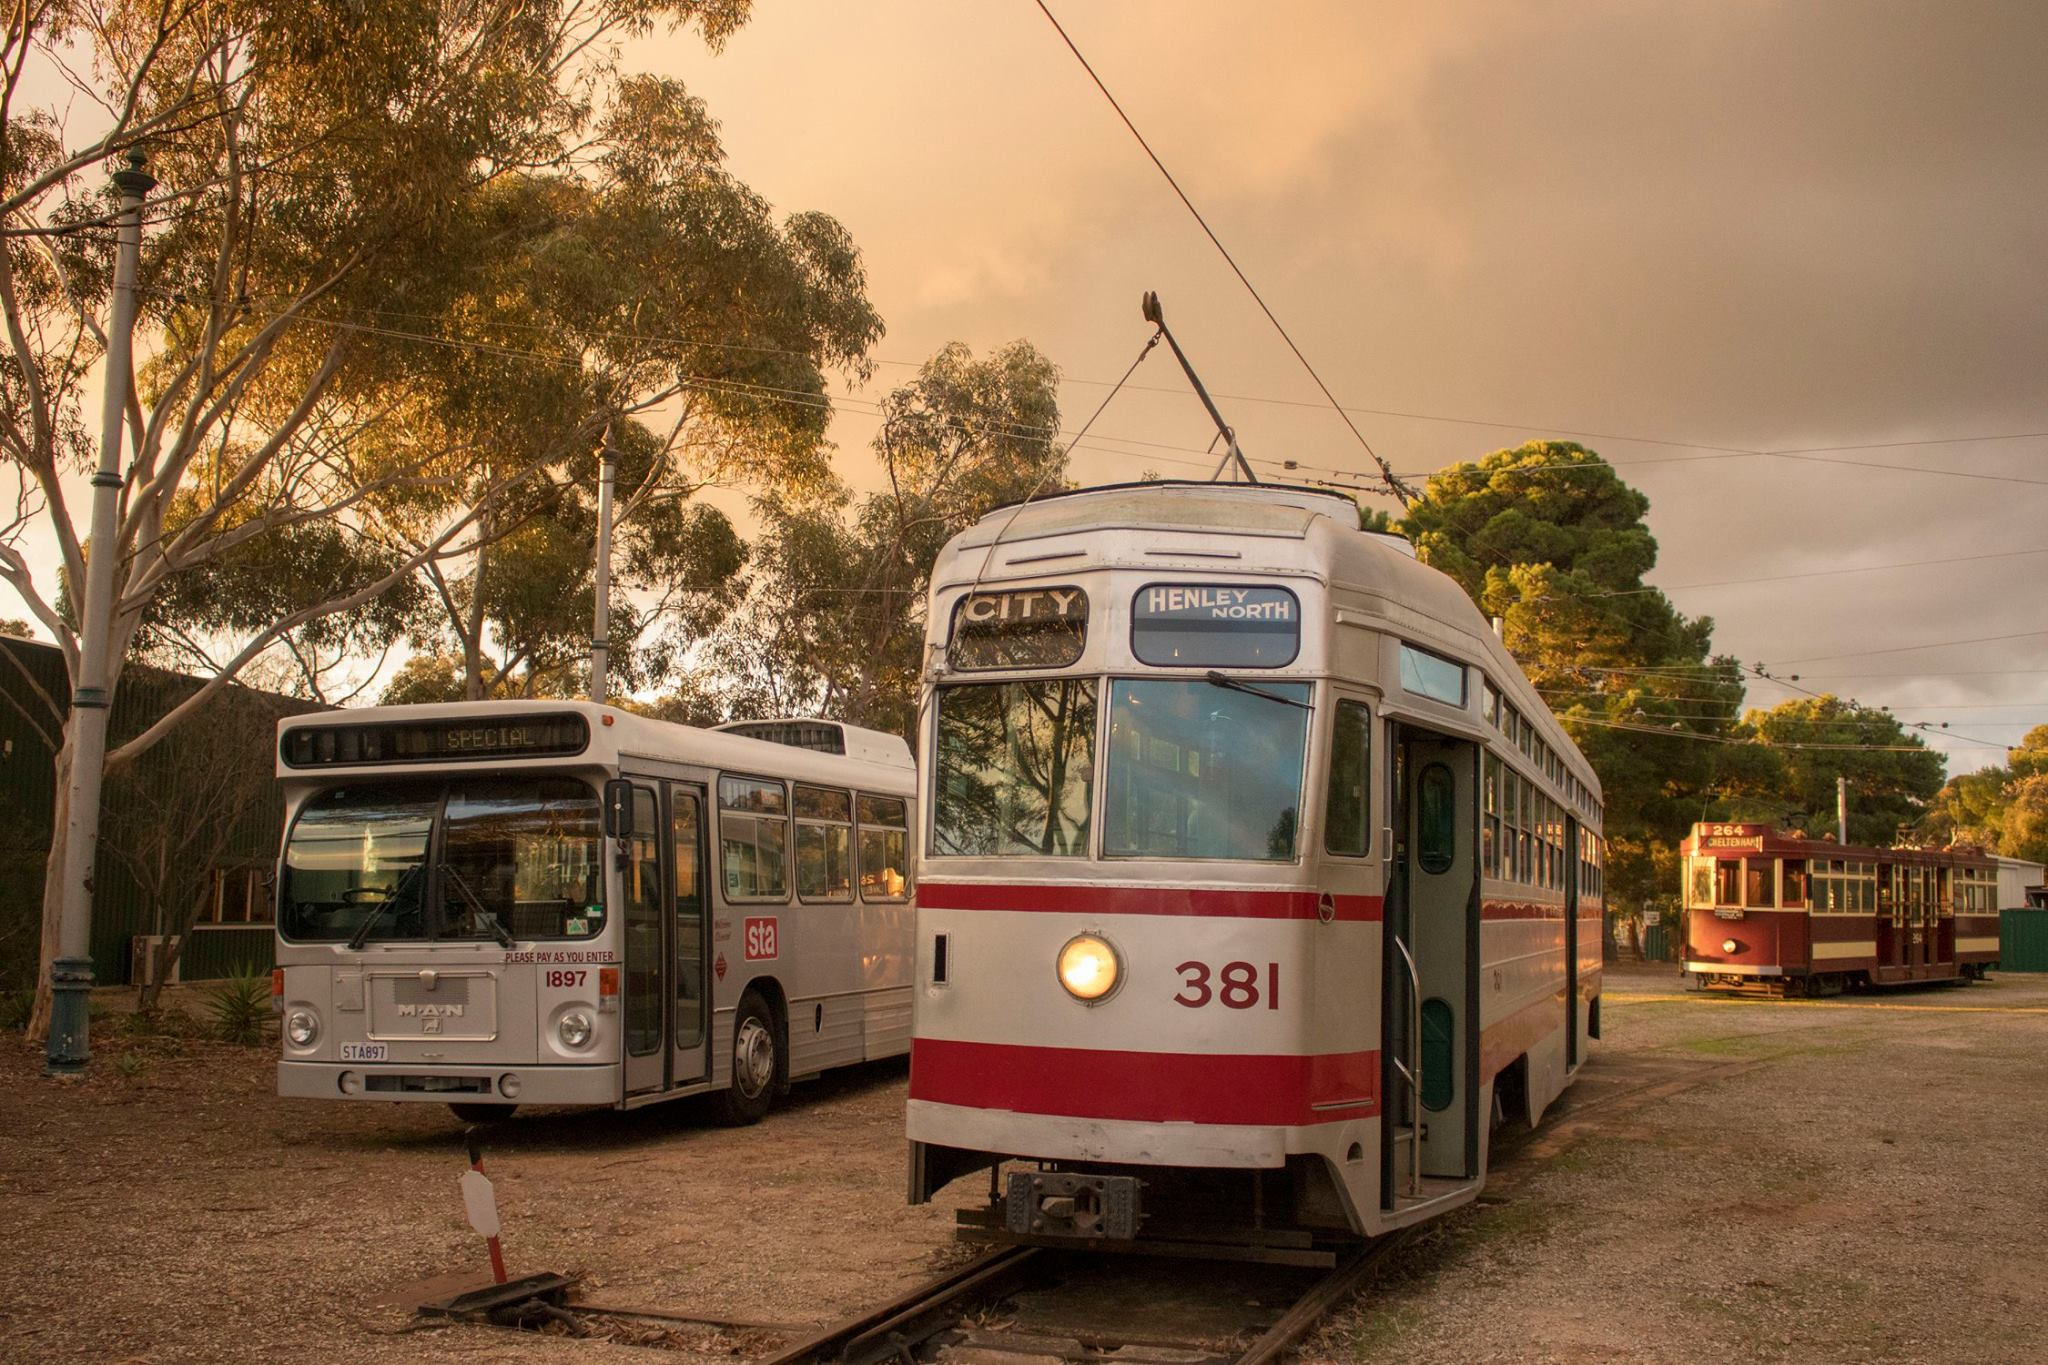 MAN SL200 no.1897 in ORIGINAL STA SILVER LIVERY poses for a photo in the MUSEUM YArd with Trams No. 381 & 264